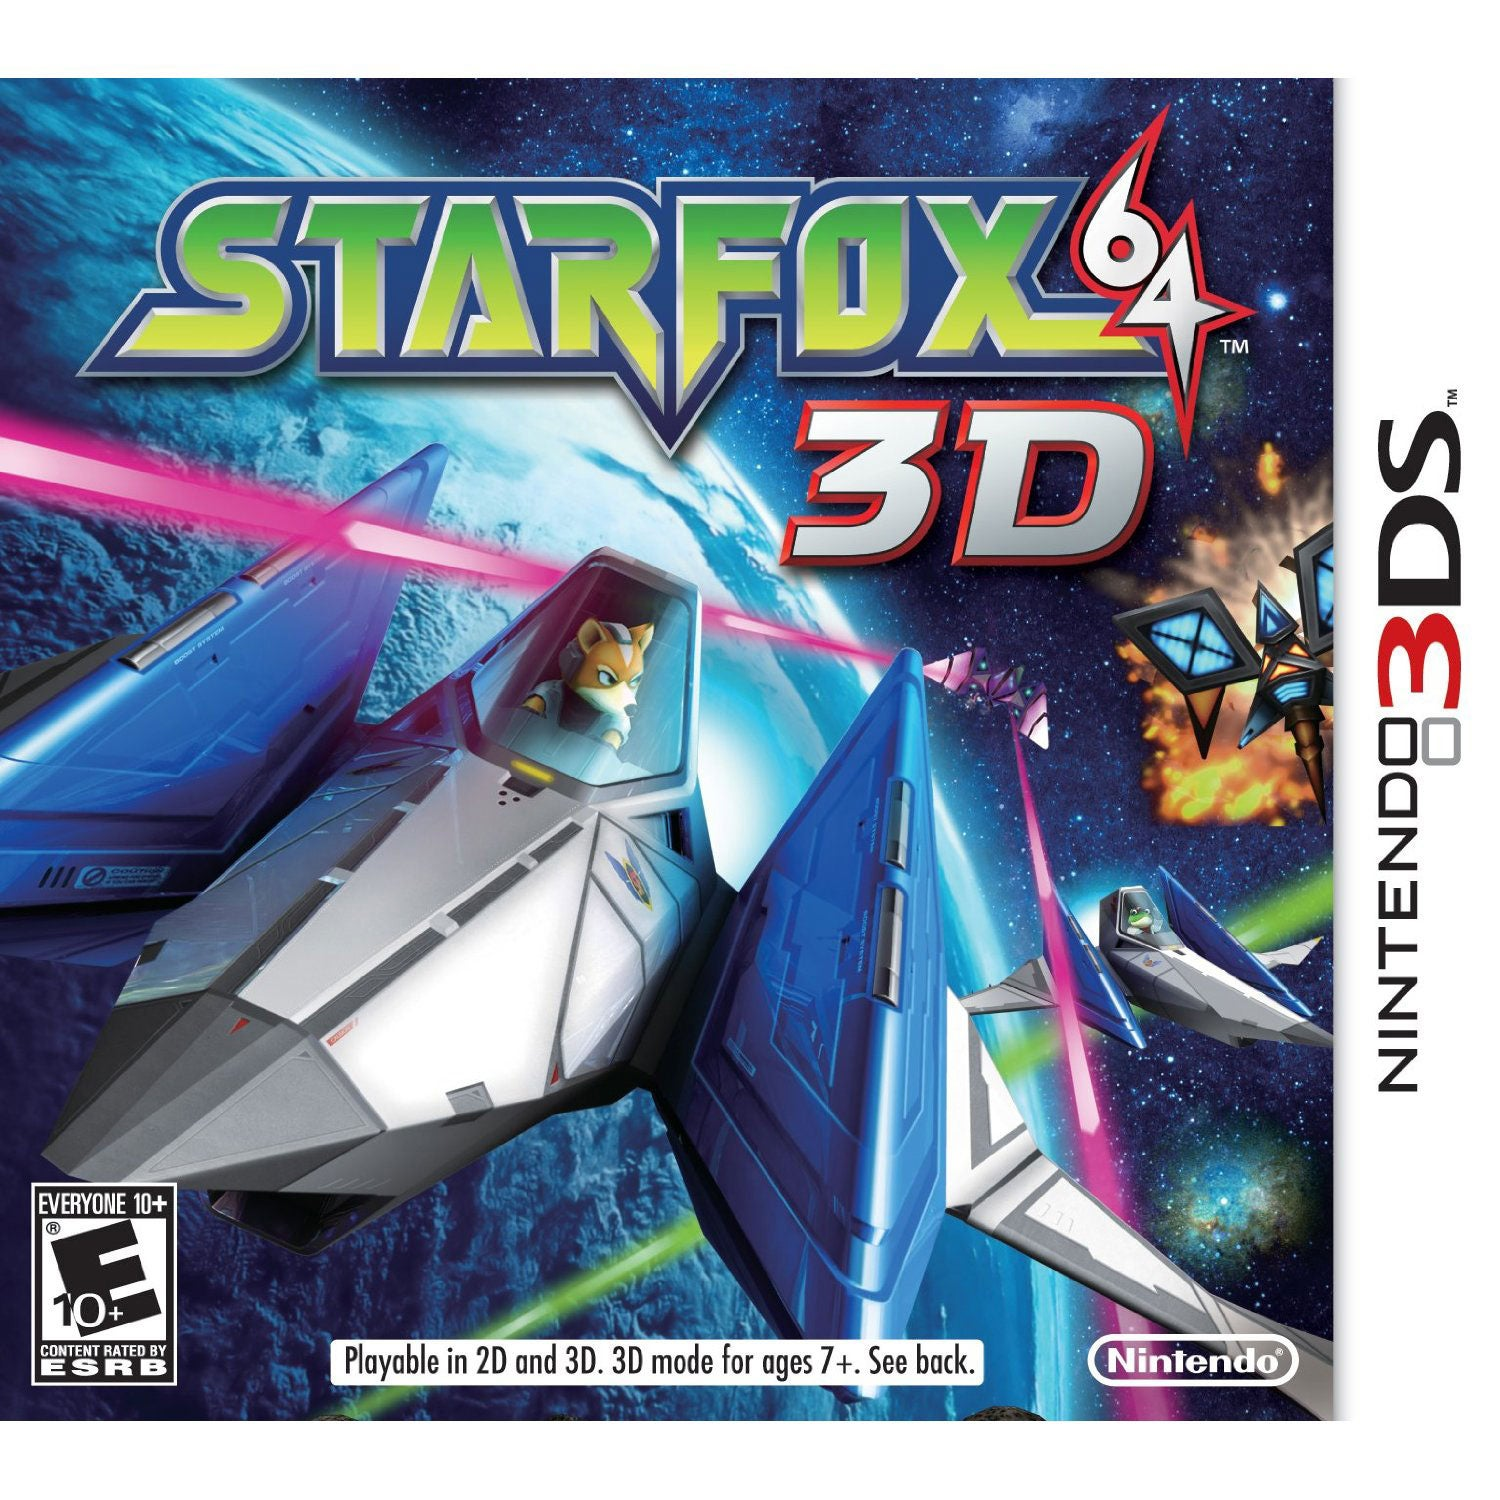 NinDS 3DS - Star Fox 64 3D - By Nintendo